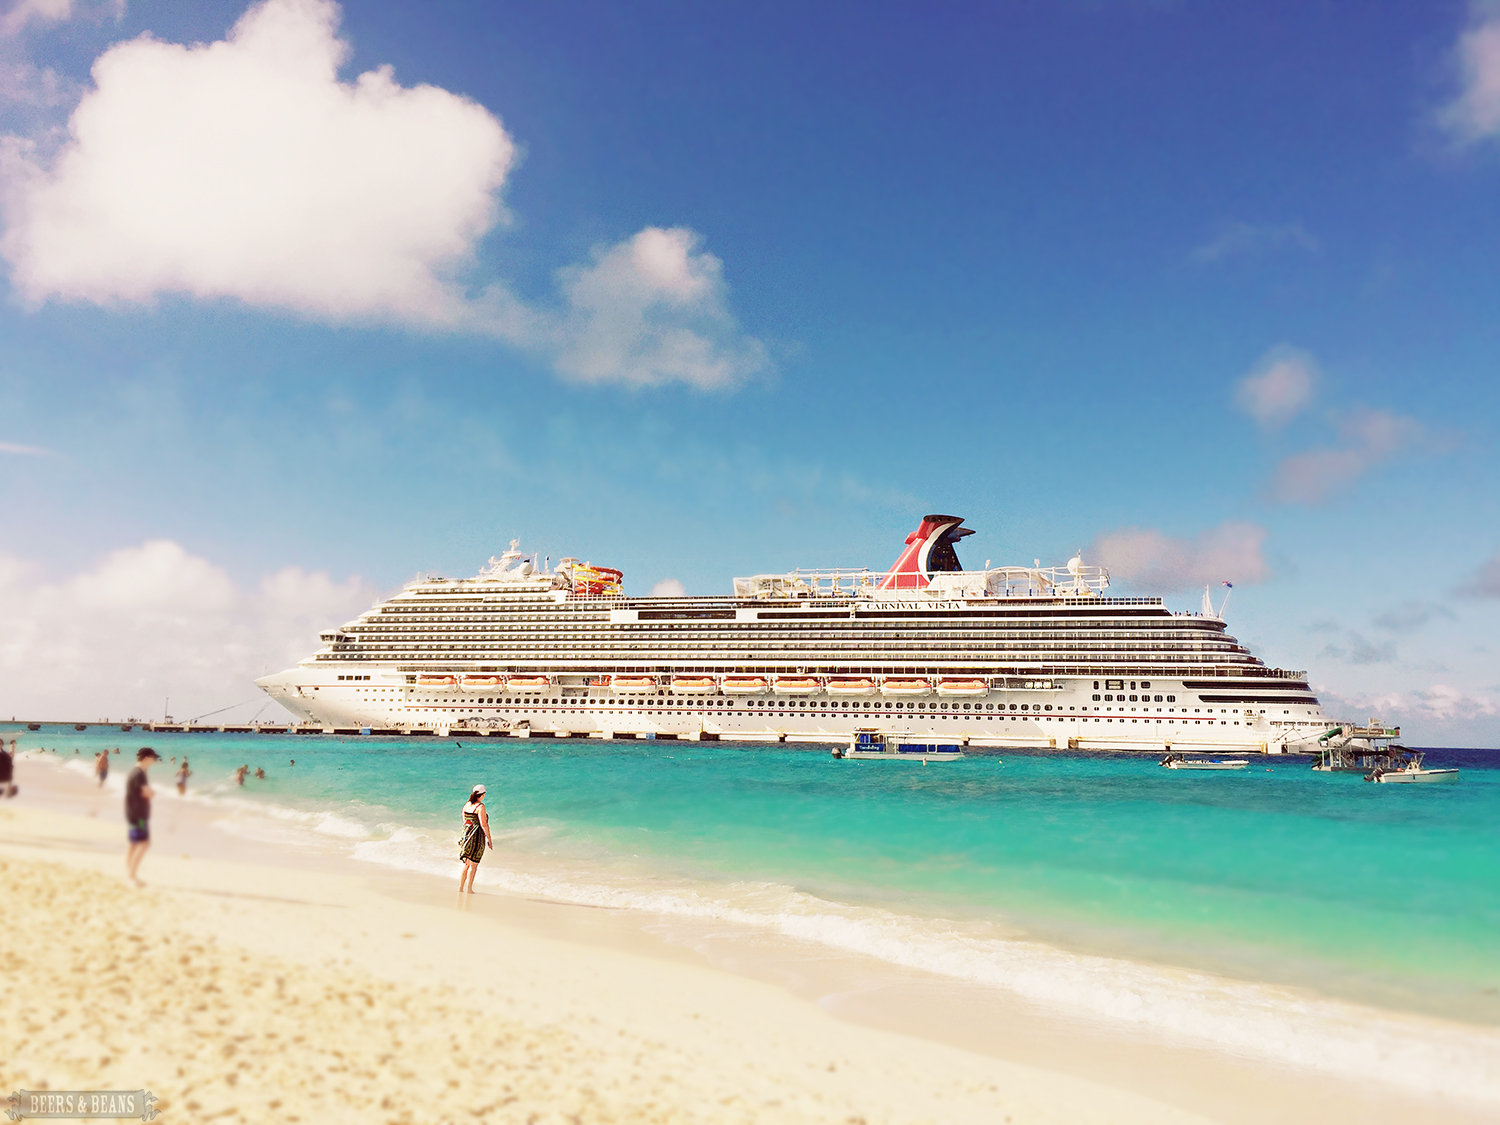 The Carnival Vista near the beach in Grand Turk.